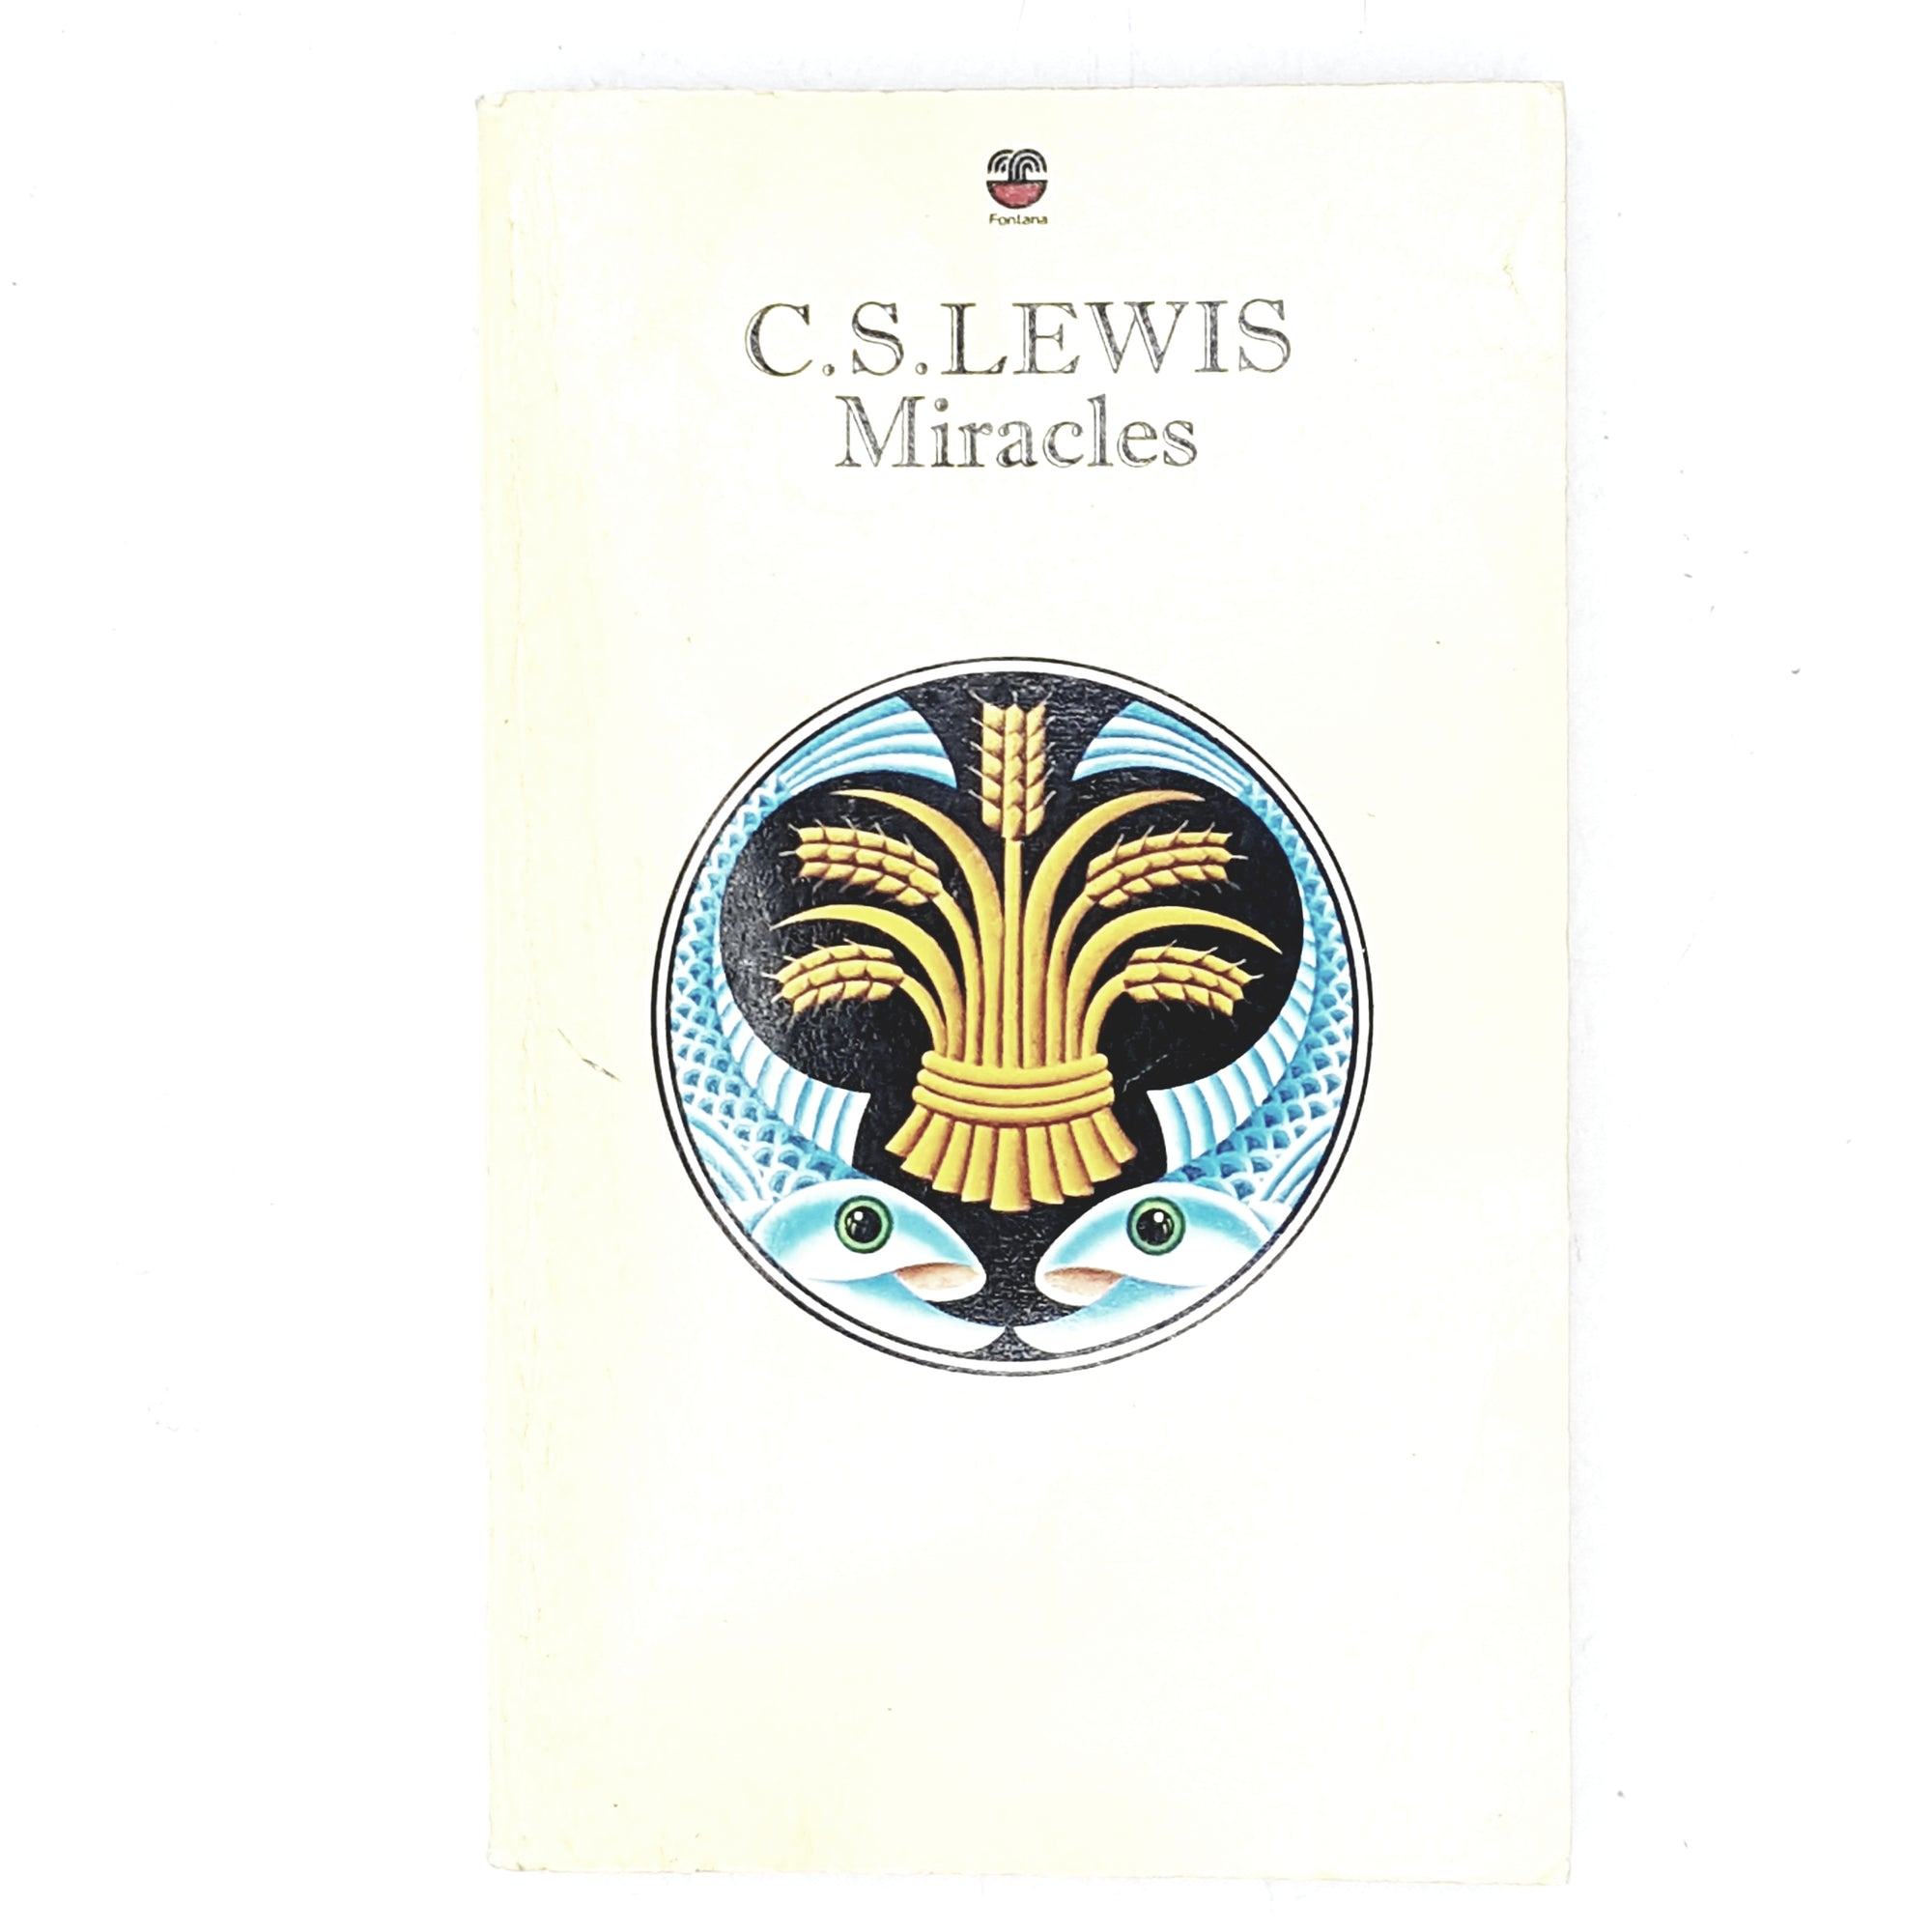 C.S. Lewis's Miracles 1976